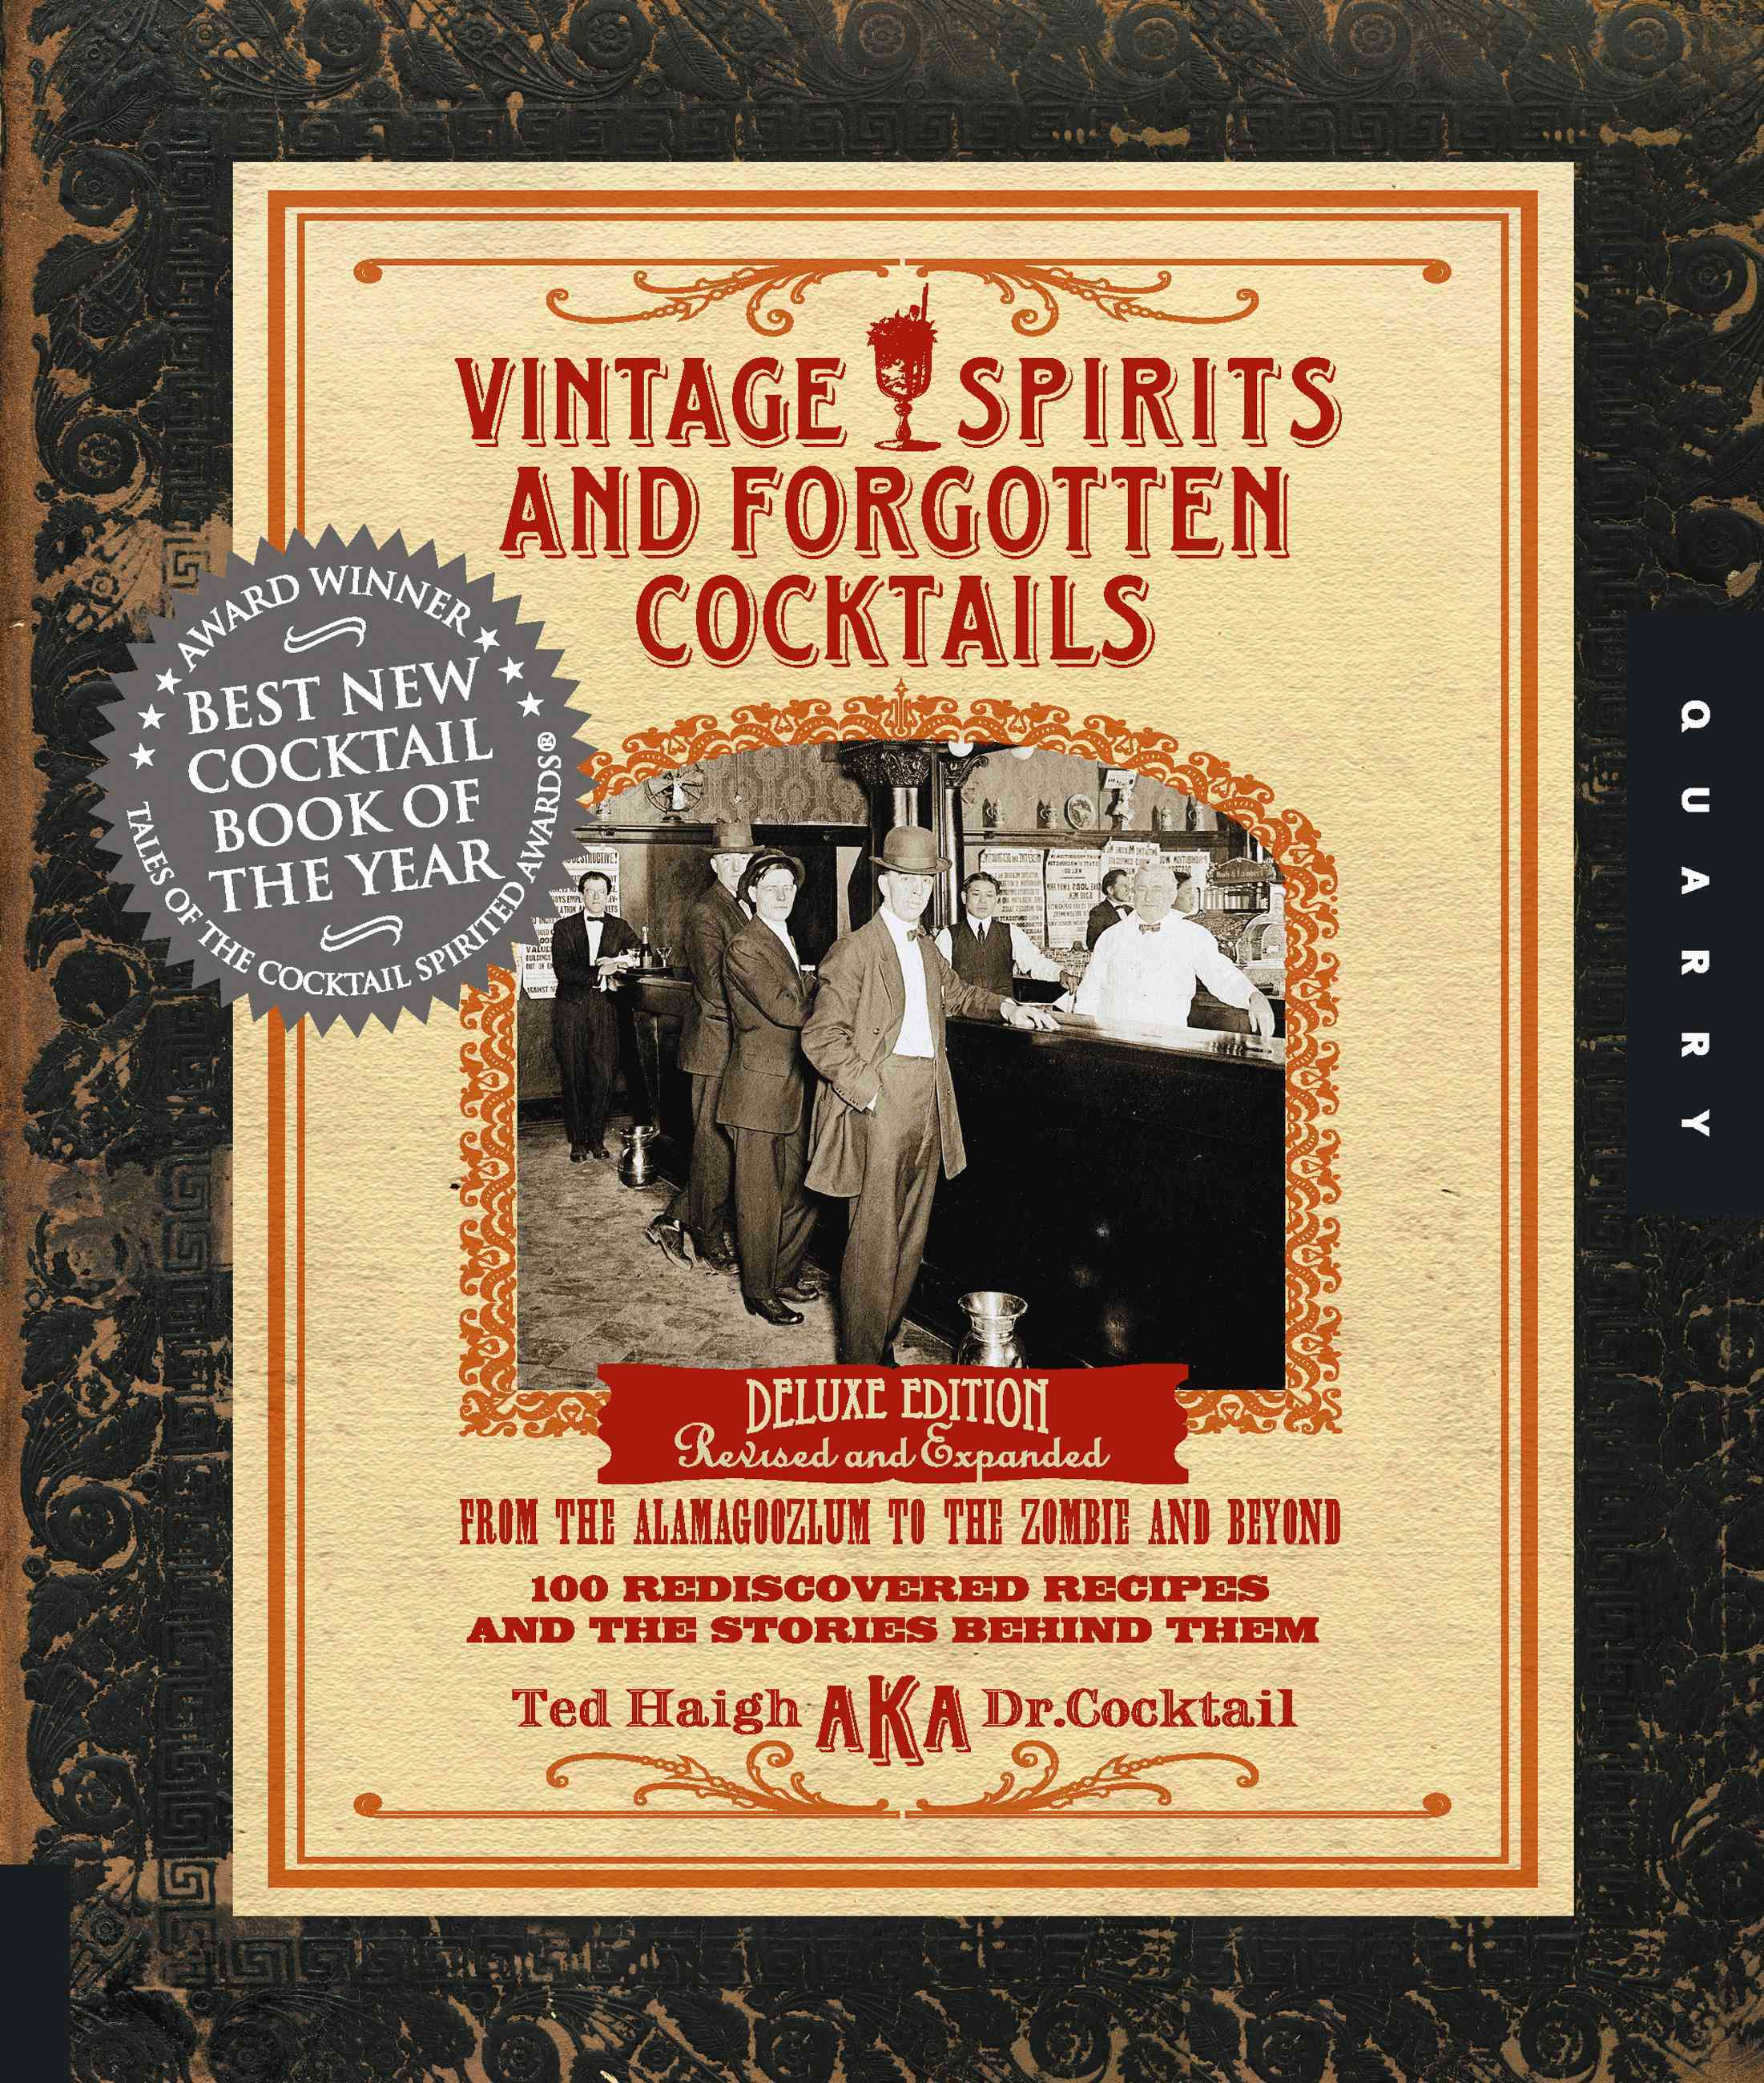 Vintage Spirits and Forgotten Cocktails: 100 Rediscovered Recipes and the Stories Behind Them (Hardcover)